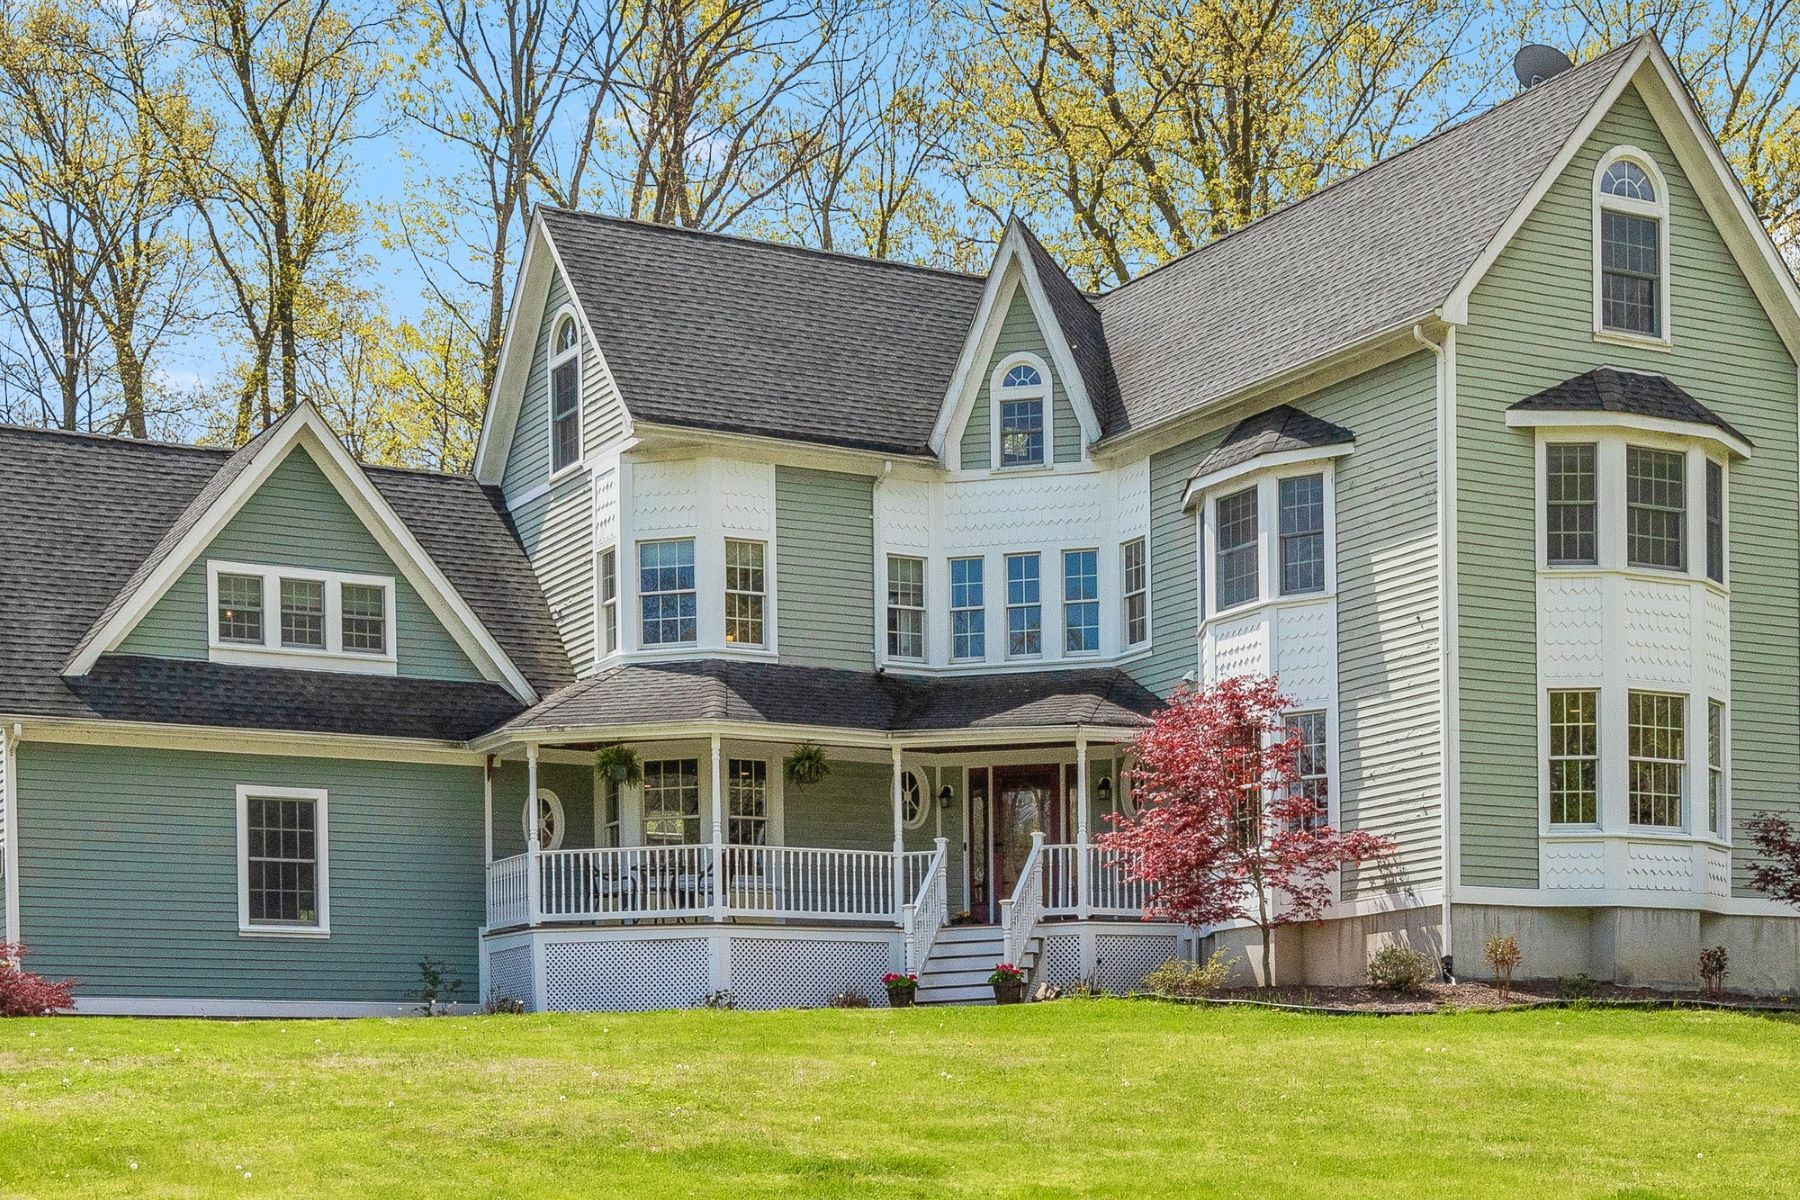 Single Family Homes for Sale at Charming Victorian Style Colonial 9 Meadow Oak Drive Blairstown, New Jersey 07825 United States